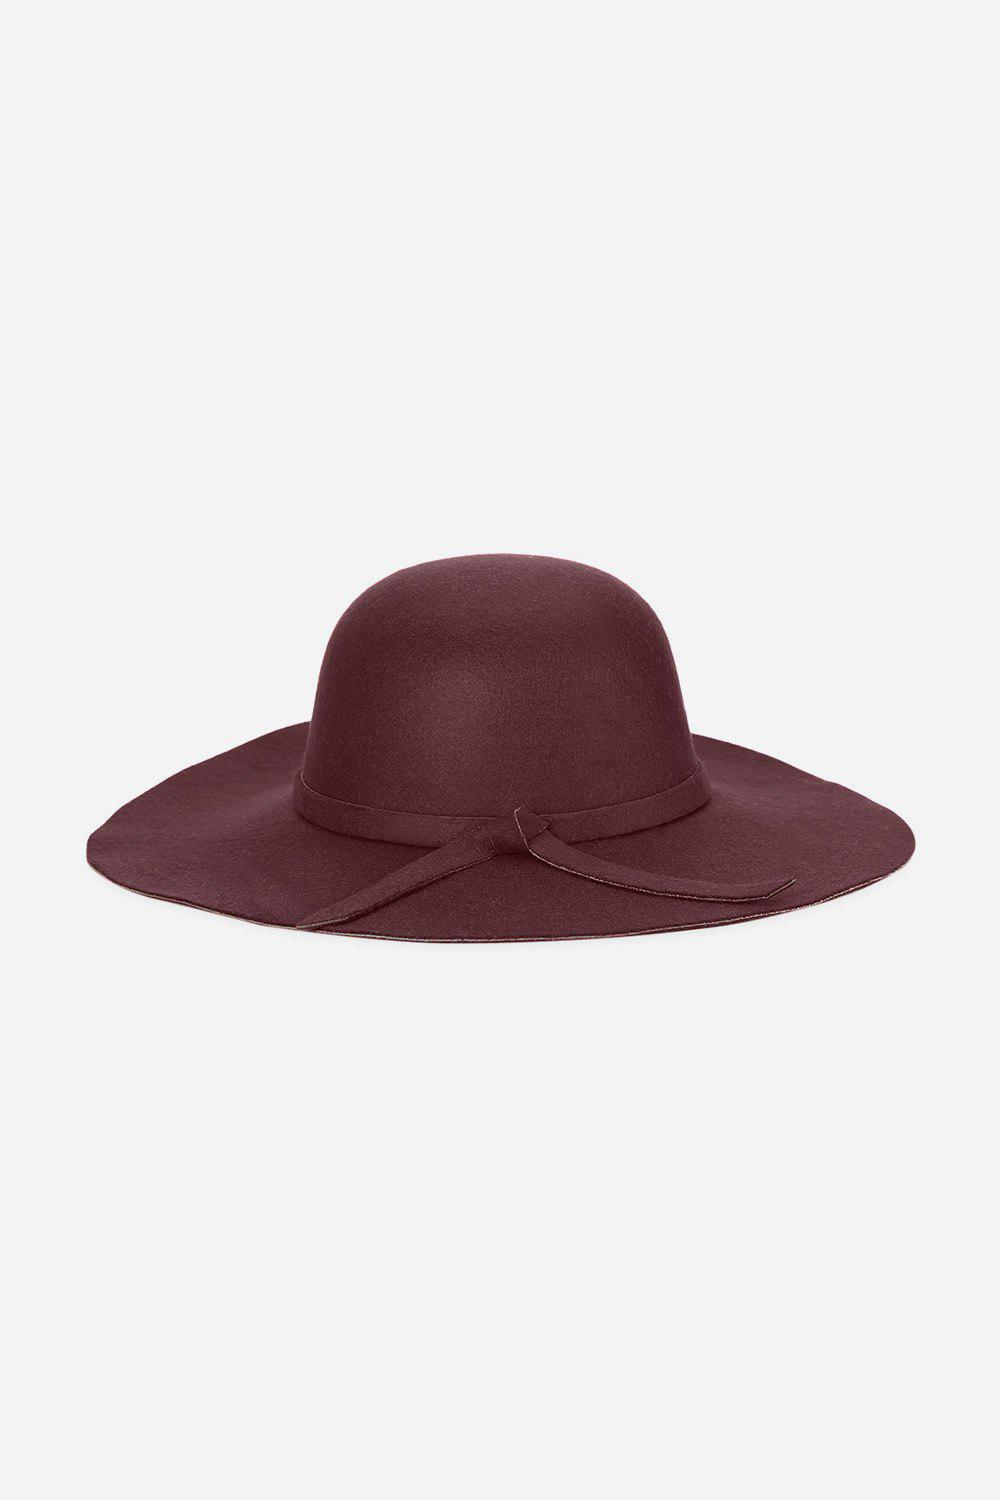 a31274bd05255 2019 Fashionable Bowknot Design Dome Top Hat For Women